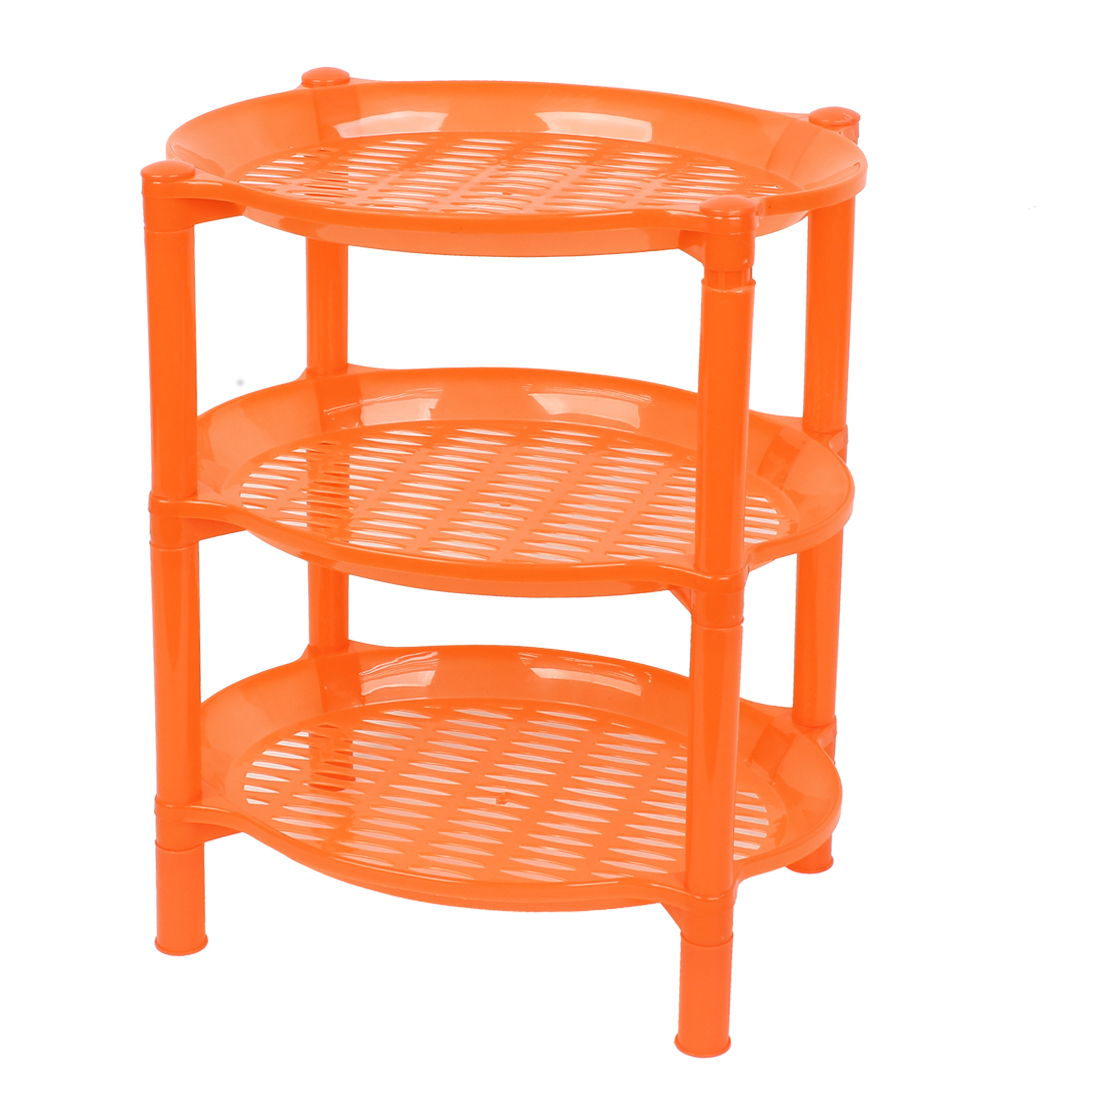 35.5cm High 3 Layers Orange Hollow Out Plastic Bathroom Commodity Storage Rack